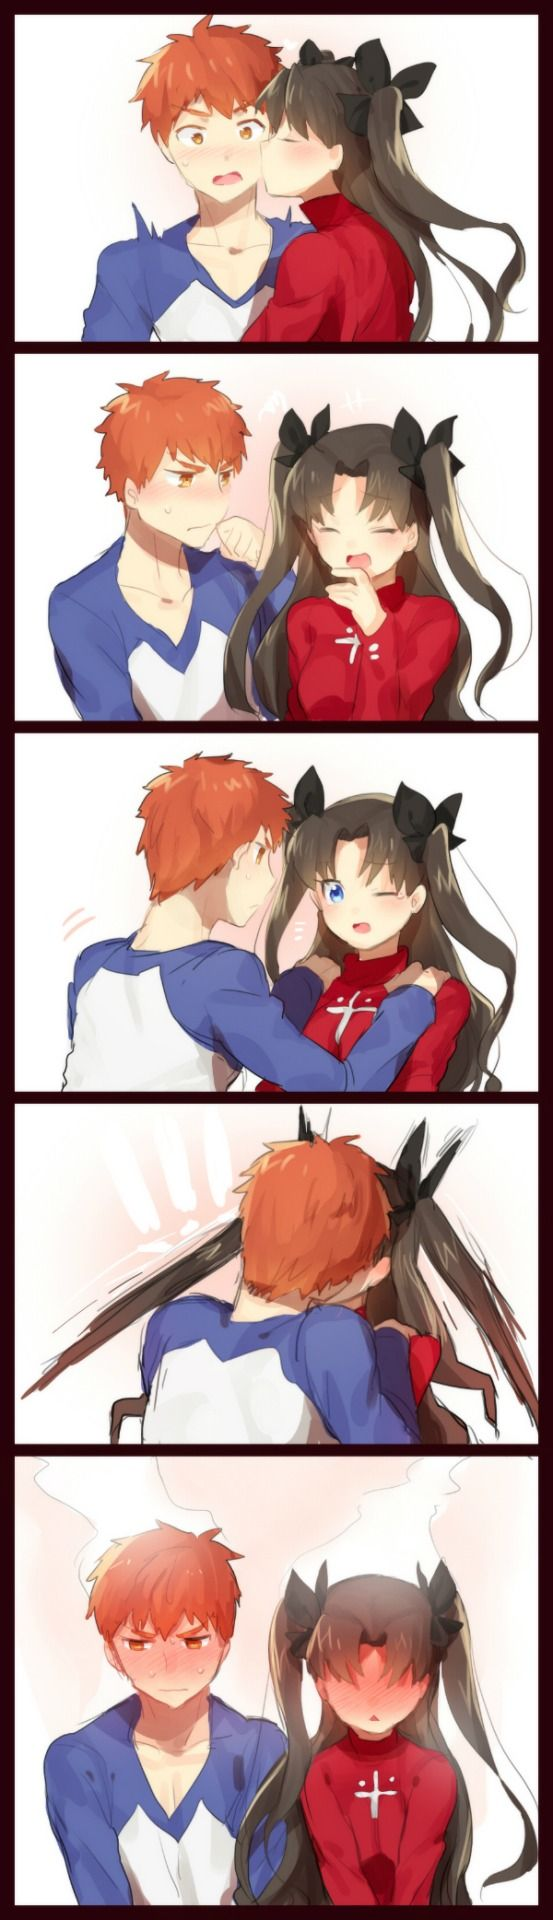 rin and shirou ending relationship